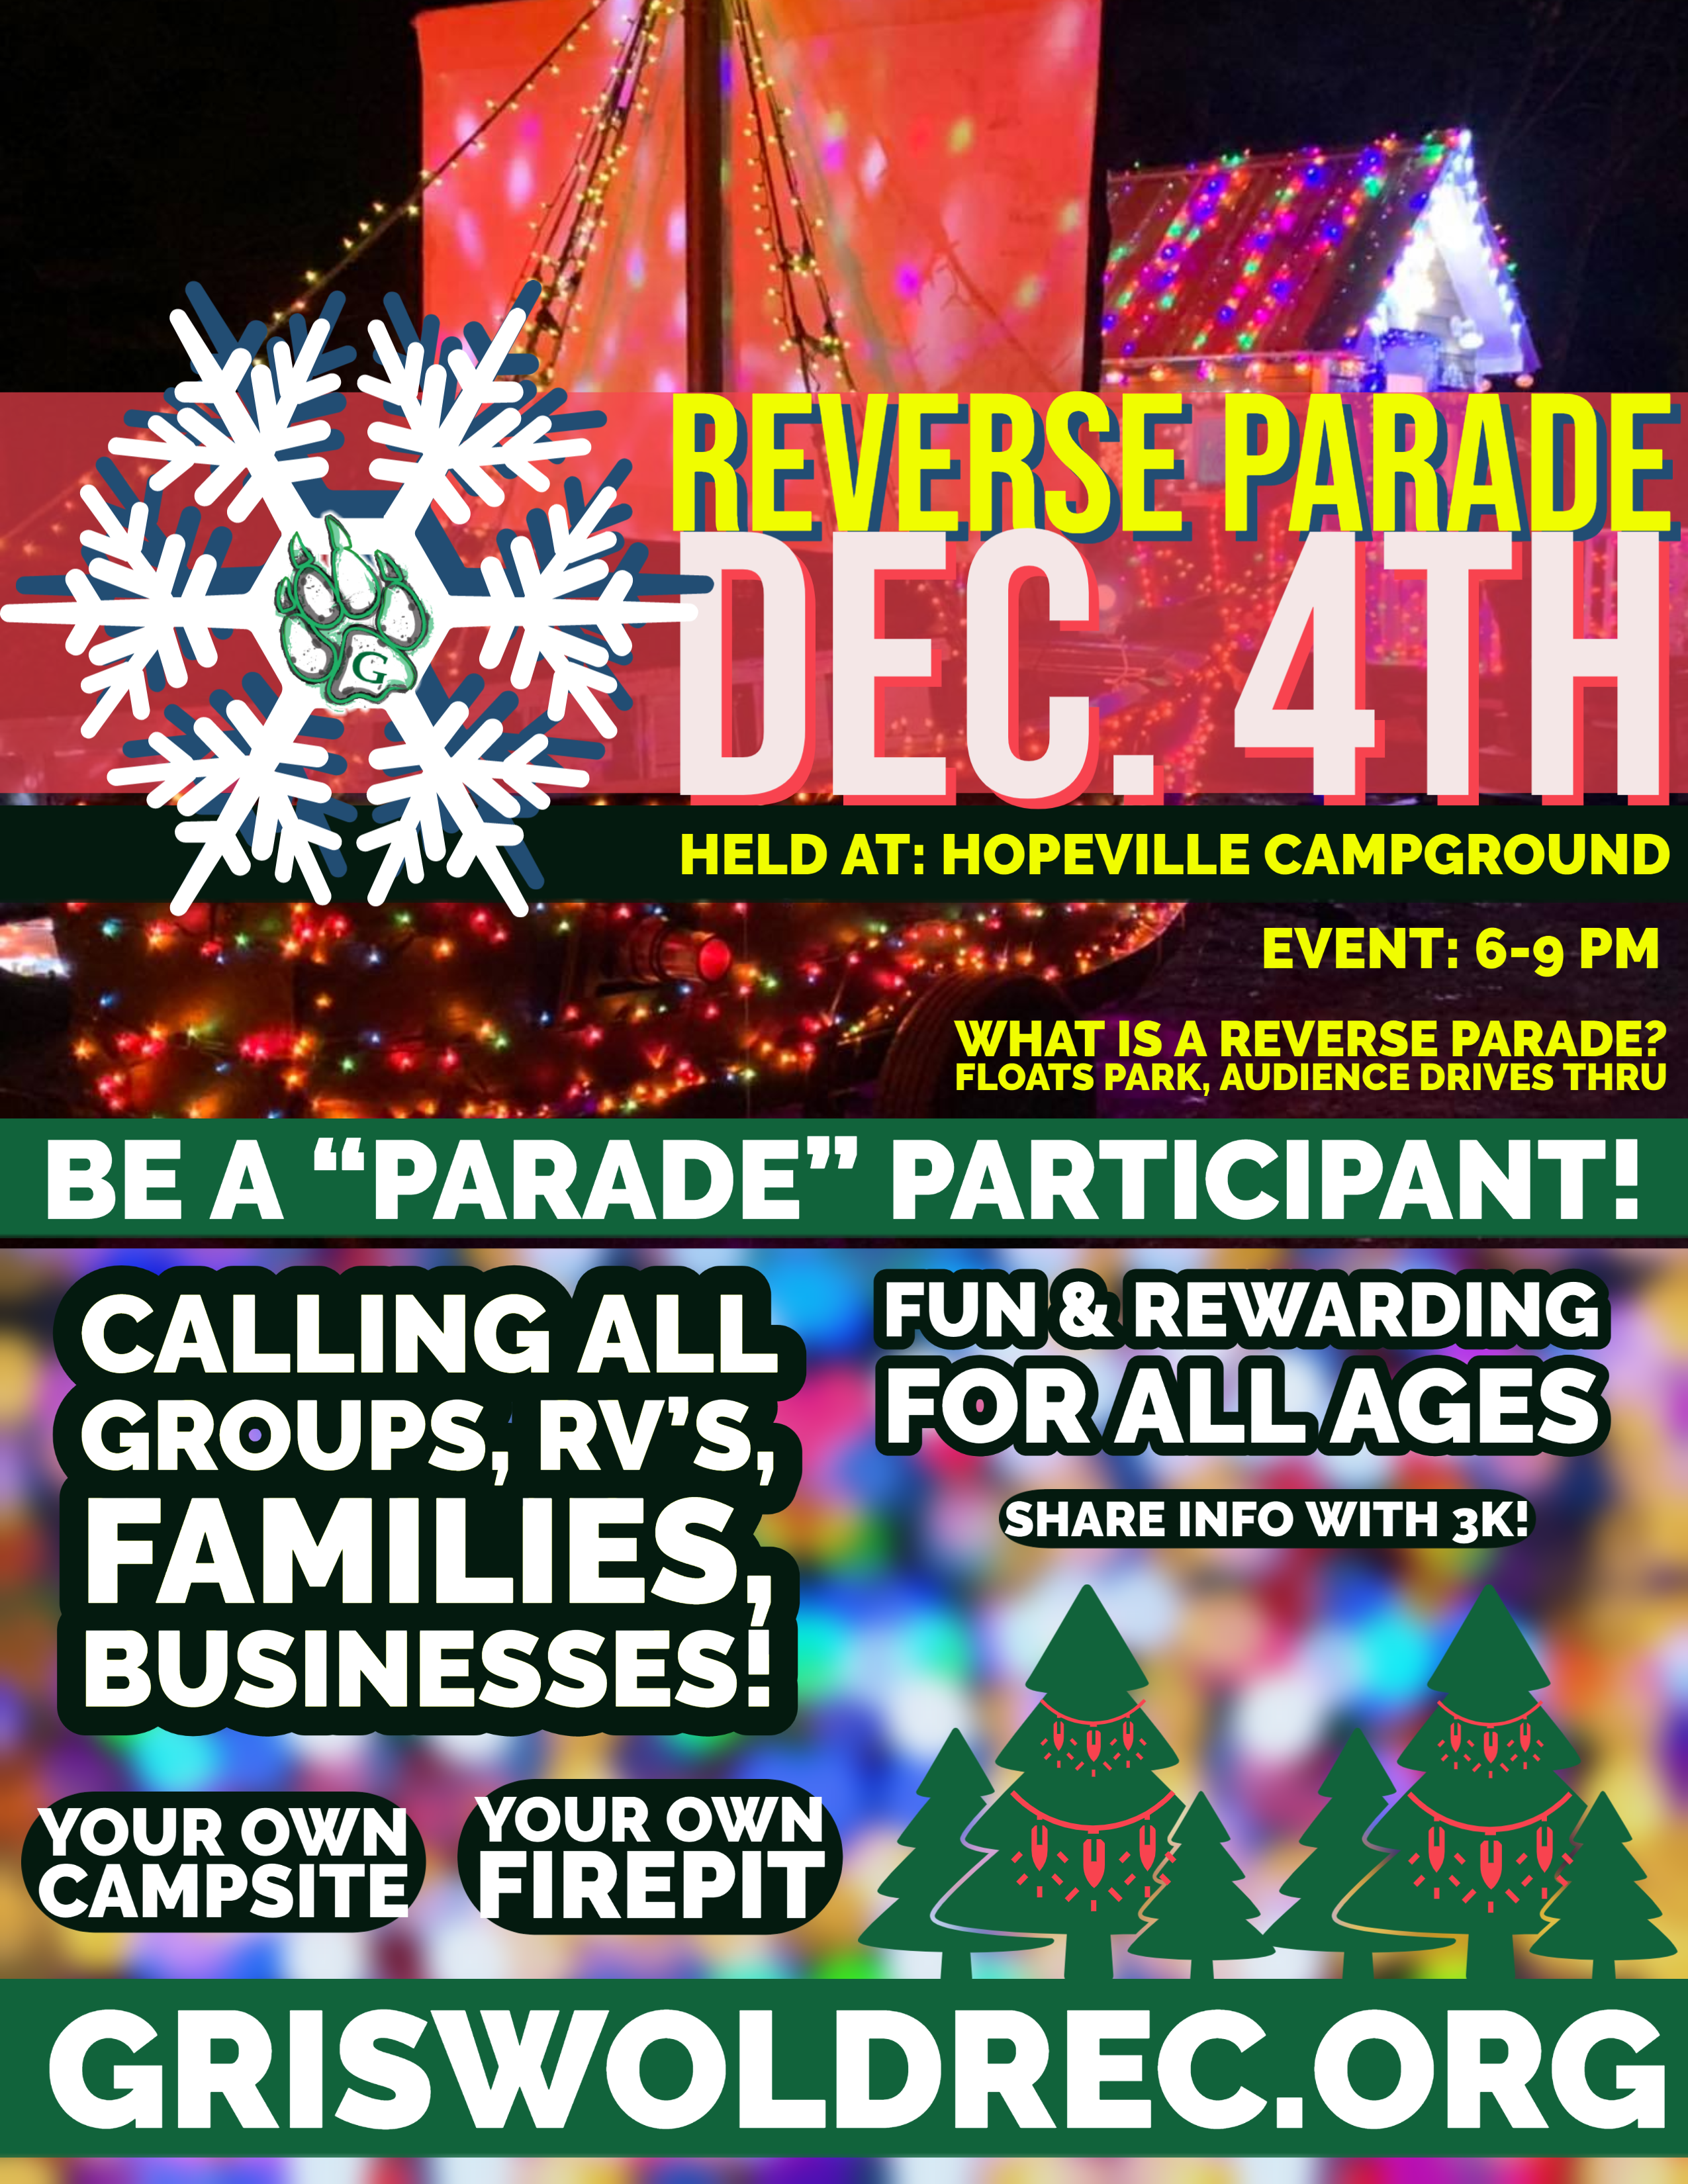 https://0201.nccdn.net/1_2/000/000/13f/2ff/snowflake-be-in-parade.png